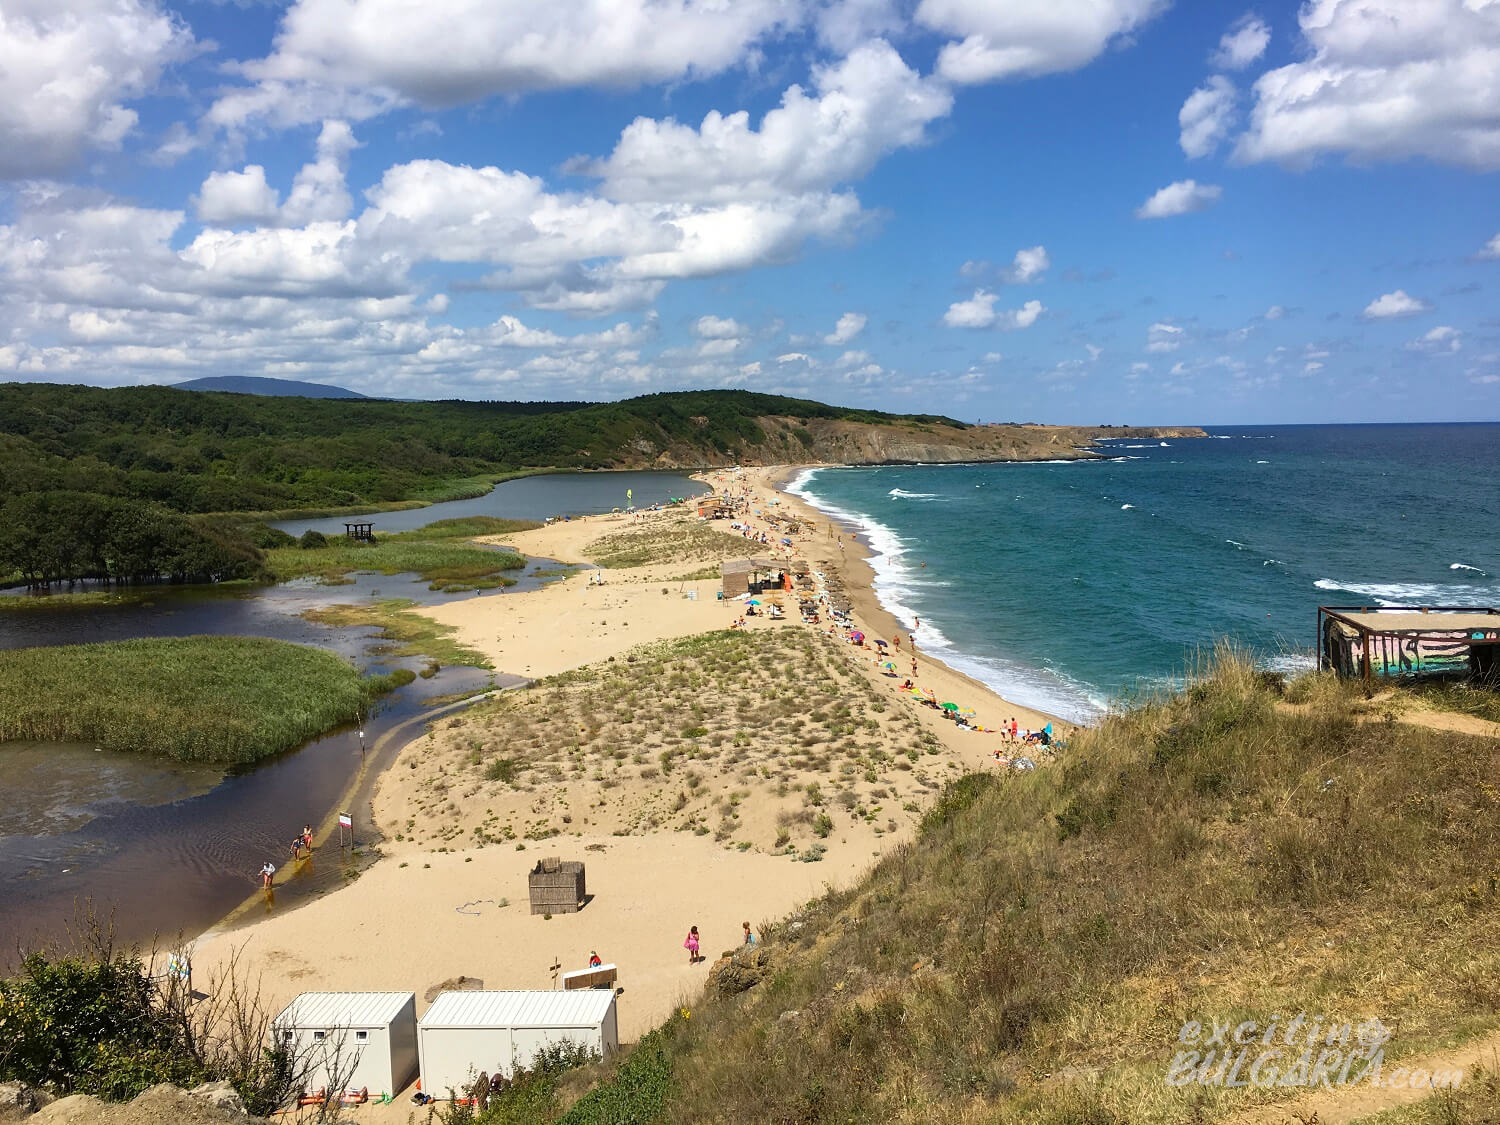 Panorama of Veleka beach, Sinemorets